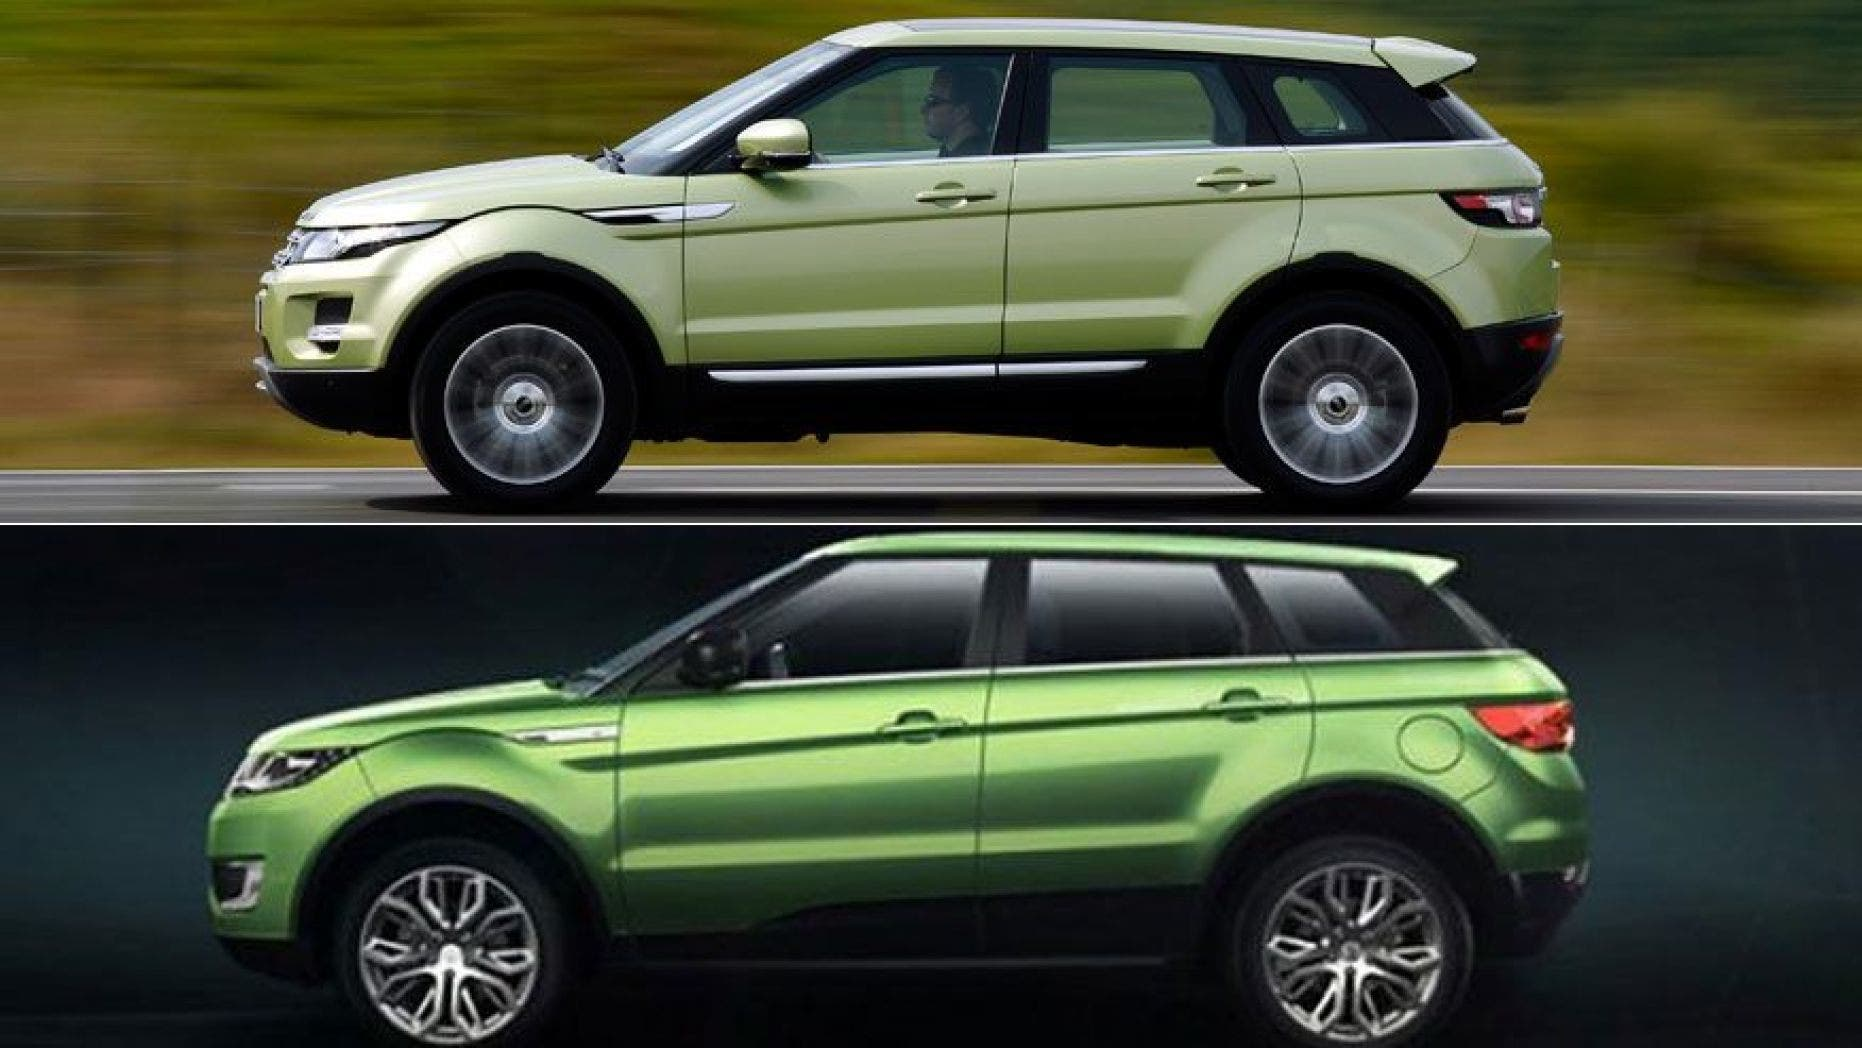 Land Rover wins case over copycat Evoque